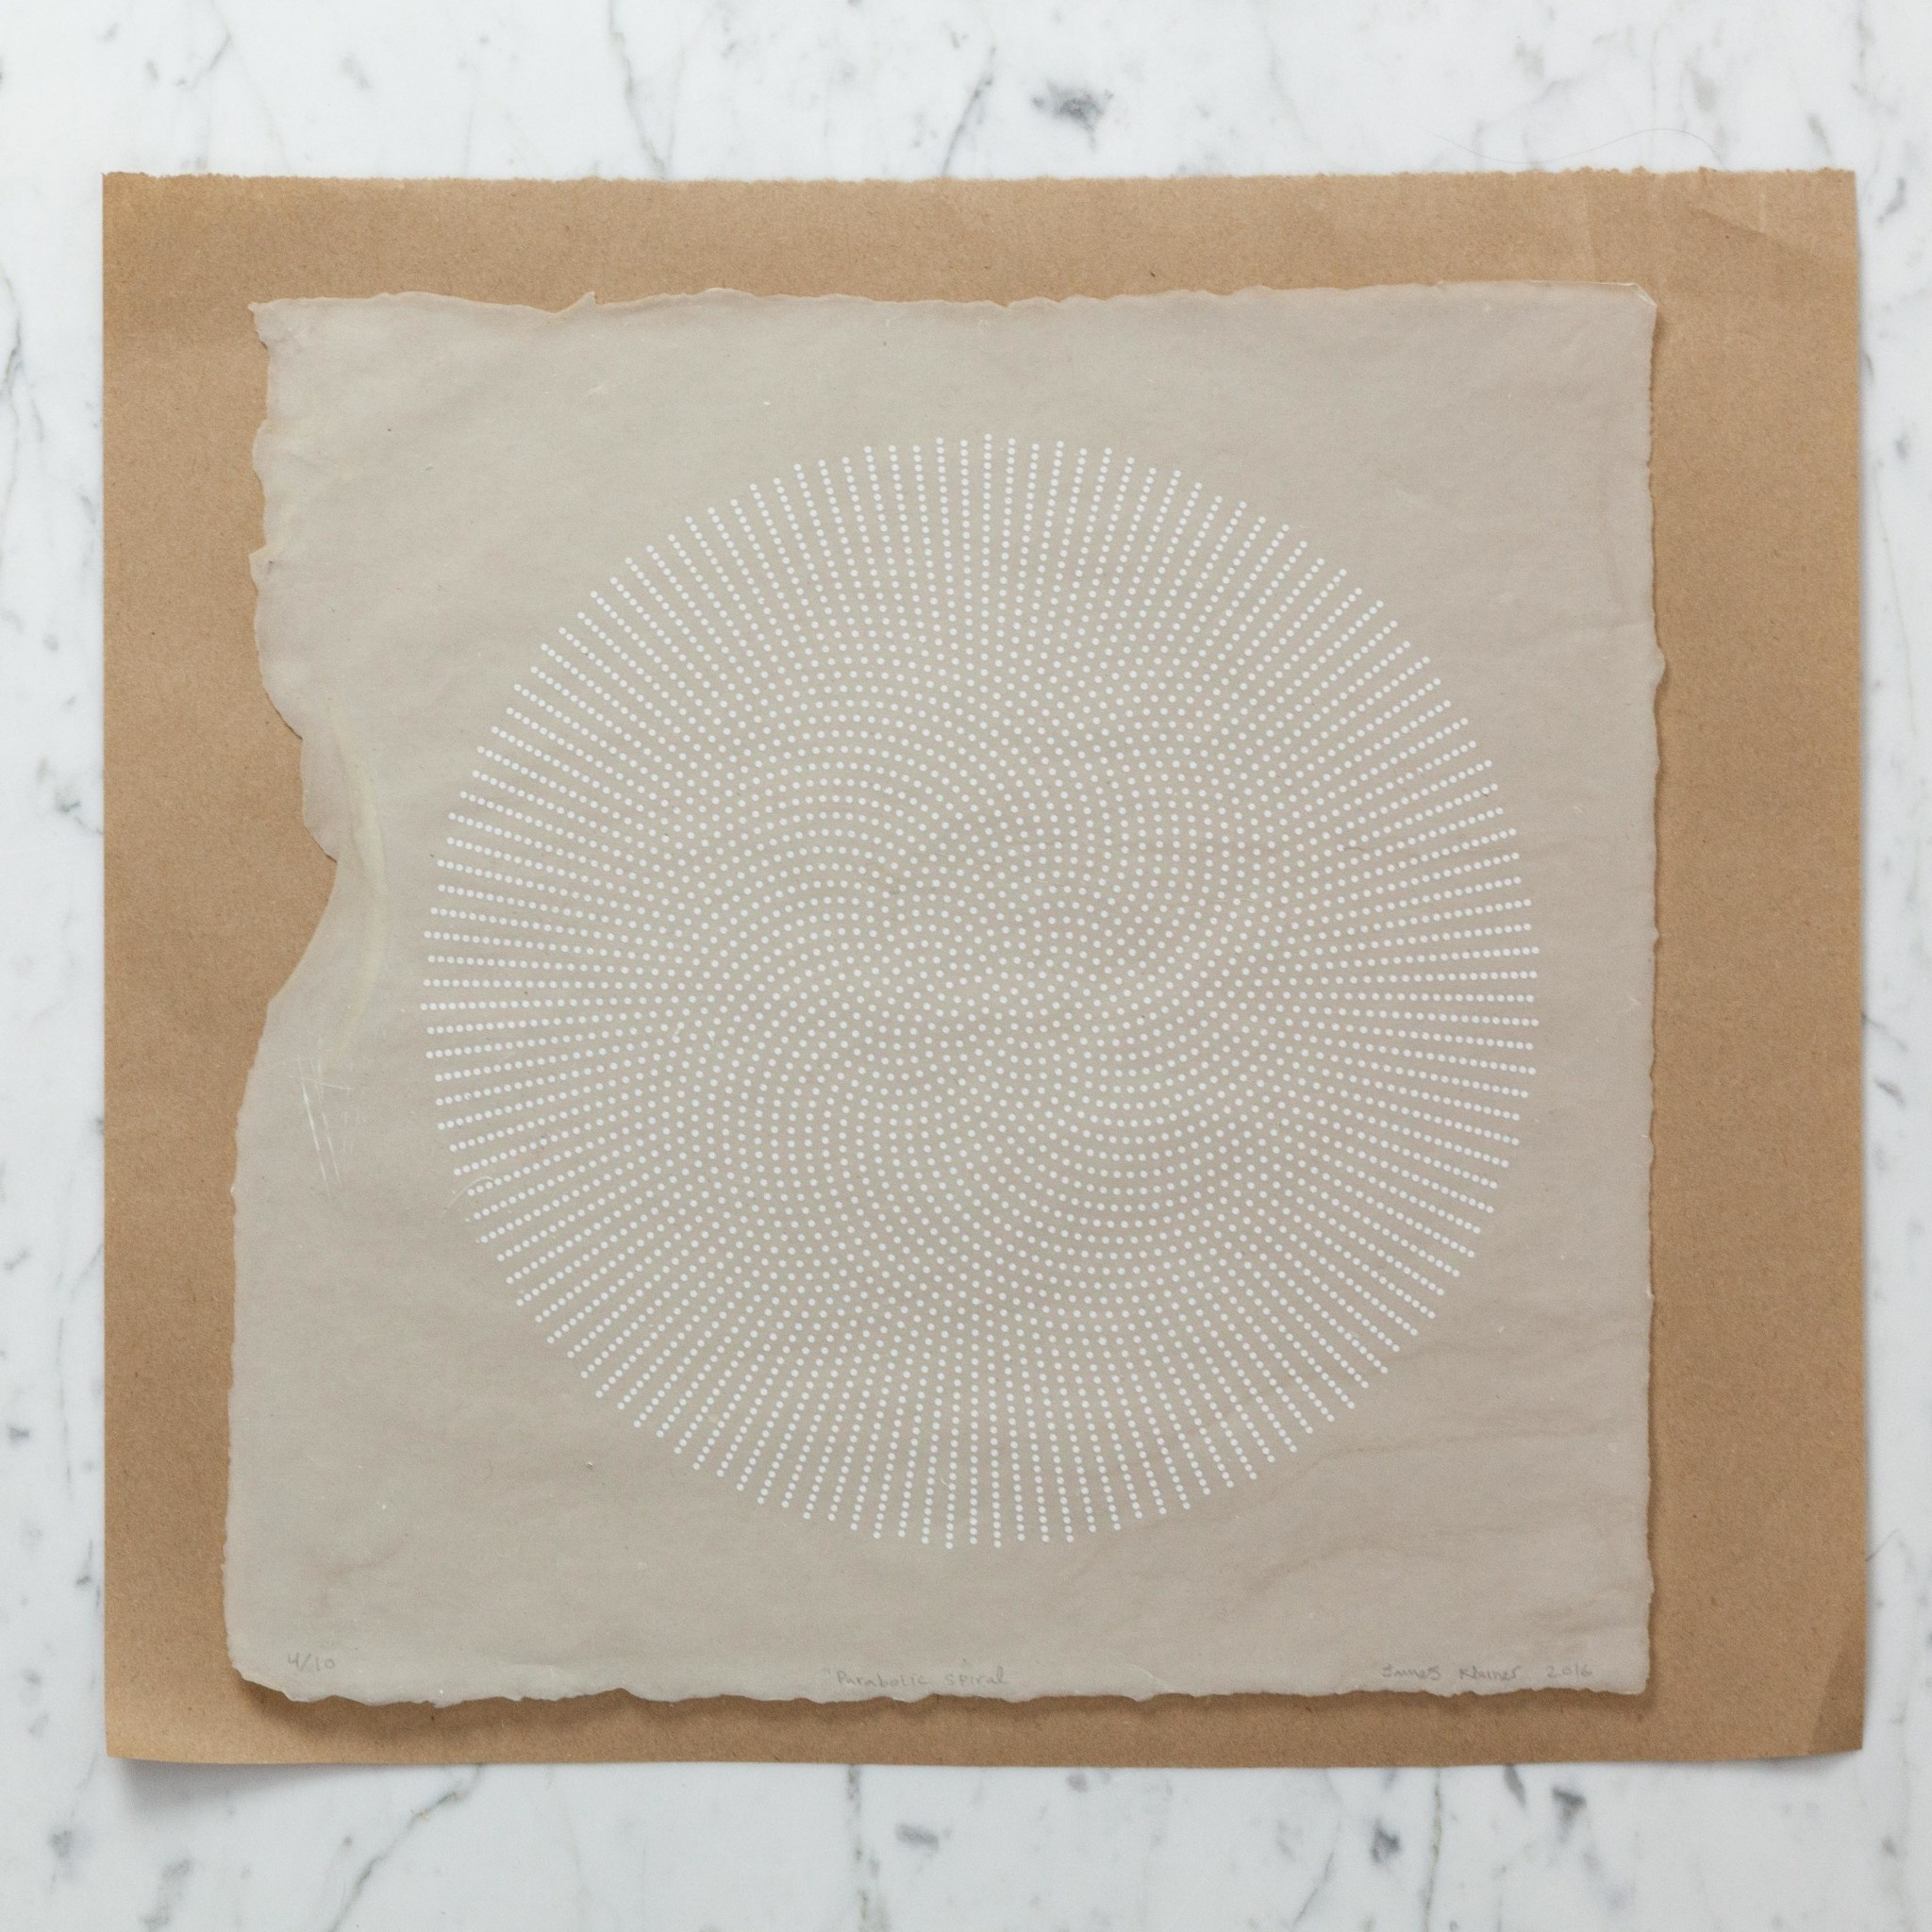 James Kleiner James Kleiner Spiral Print on Handmade Paper - Unframed - Edition of 10